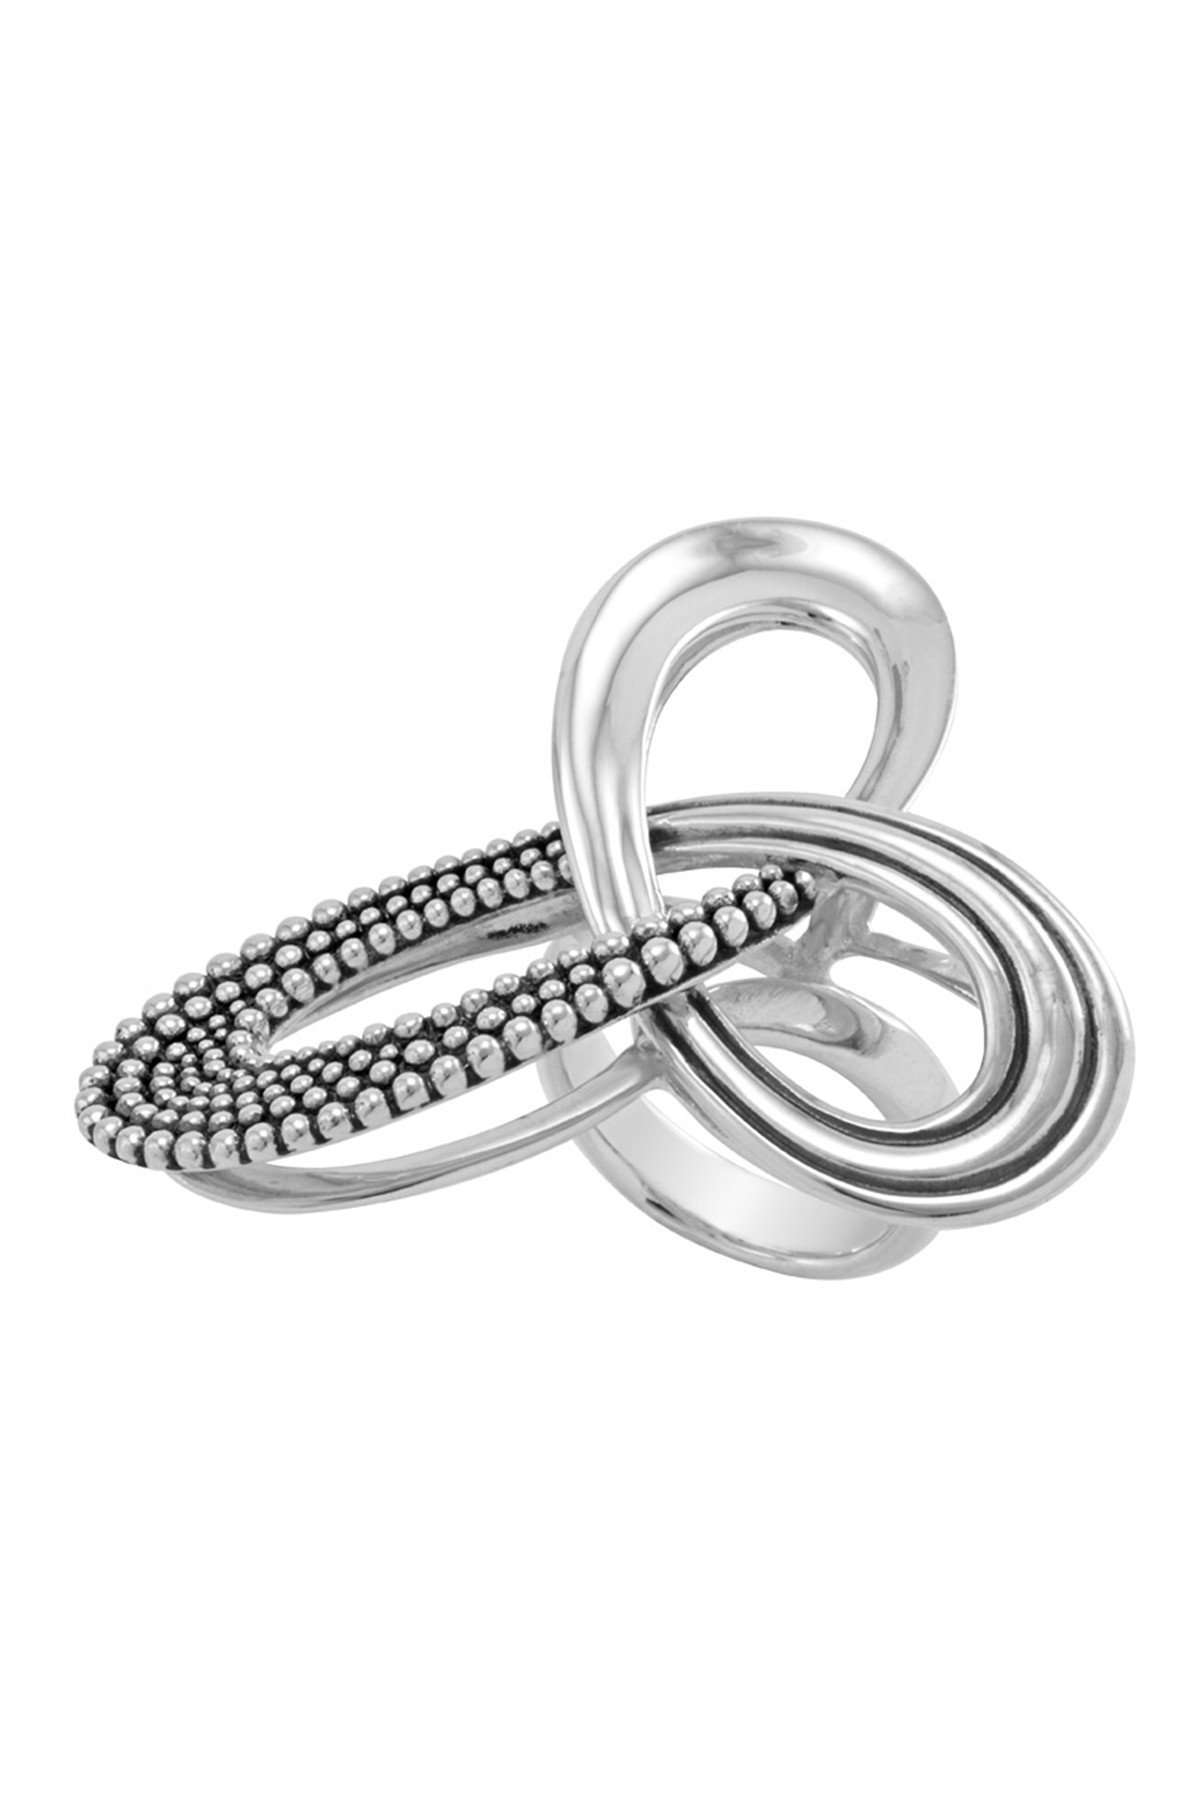 Pirouette Silver Ring